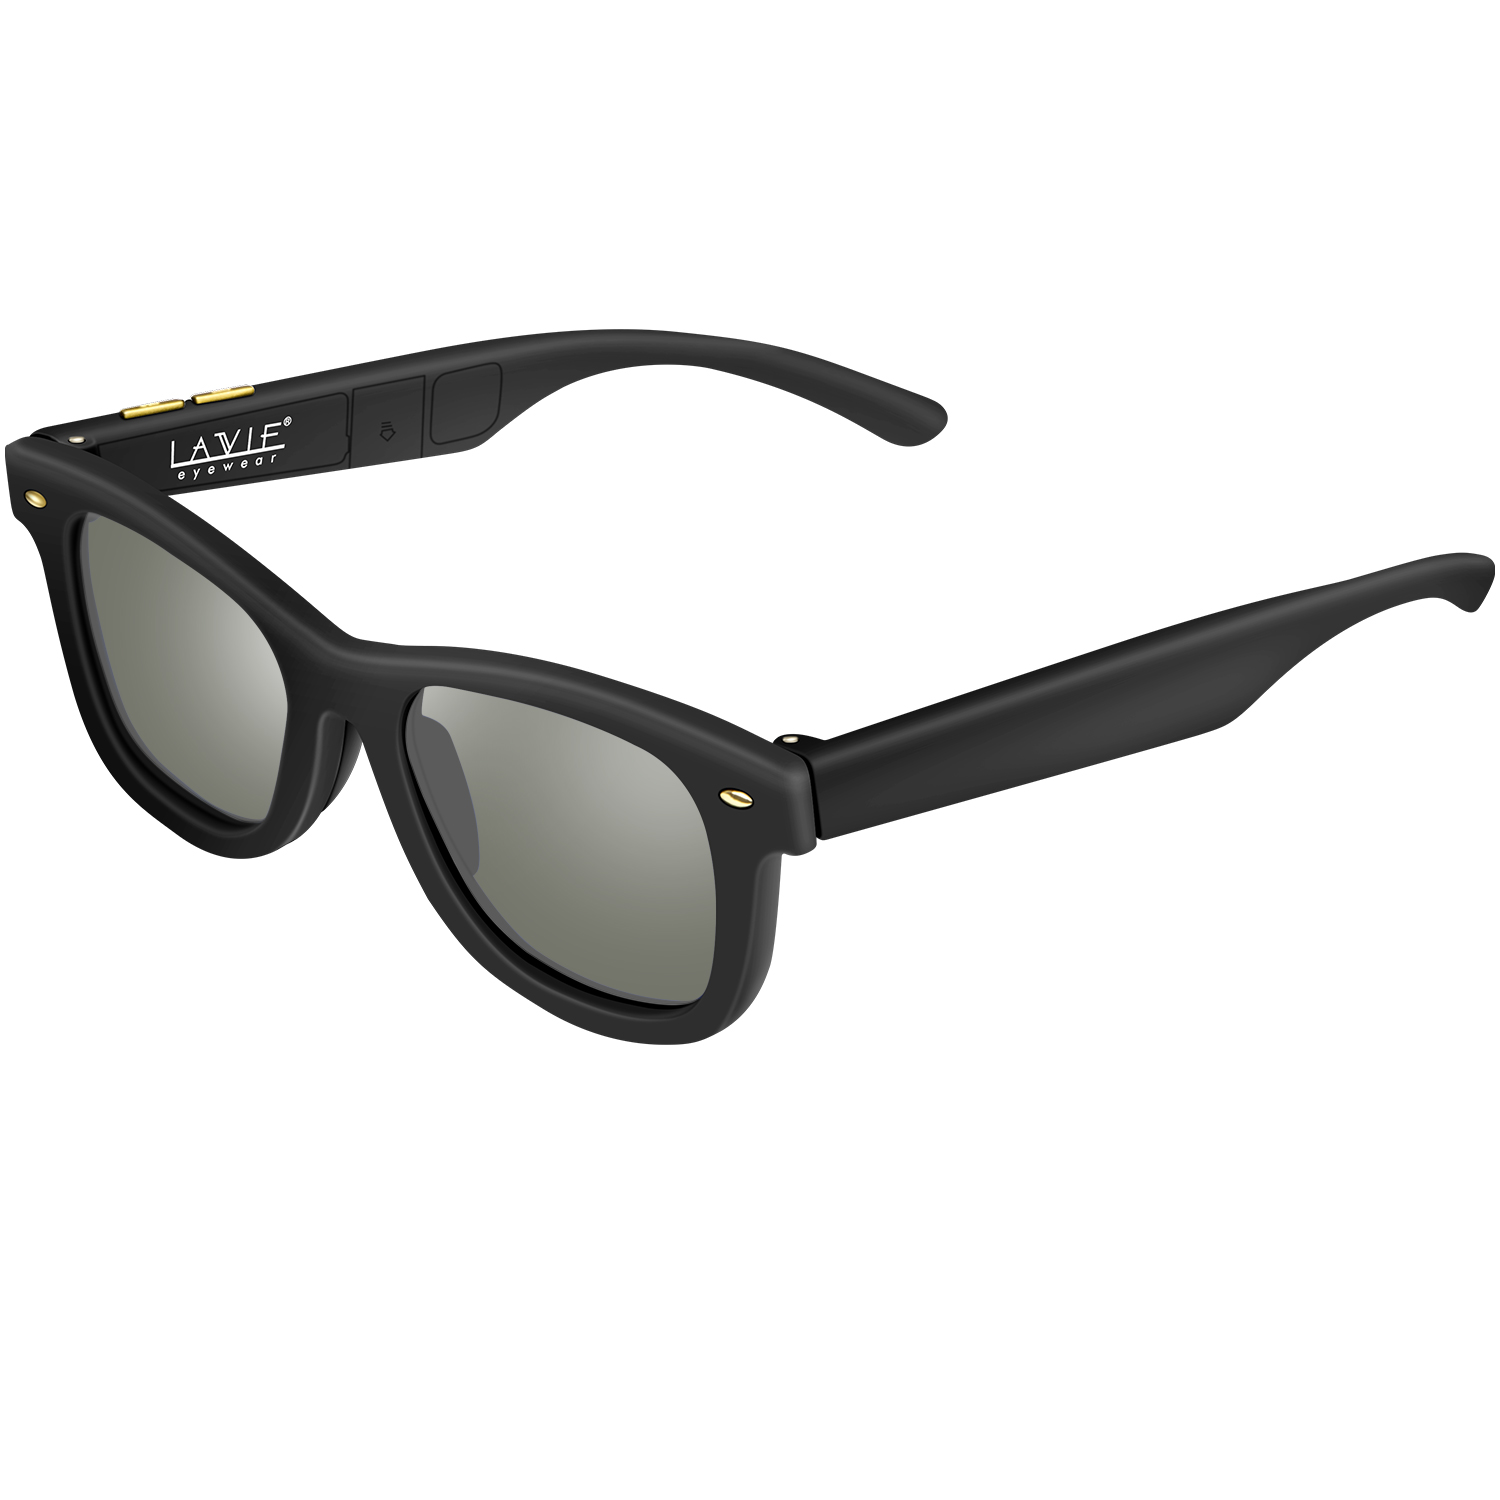 Sunglasses with Variable Electronic Tint Control Let Your Sunglasses Adapt To The Light of Surroundings Sunglasses Men Polarized ...